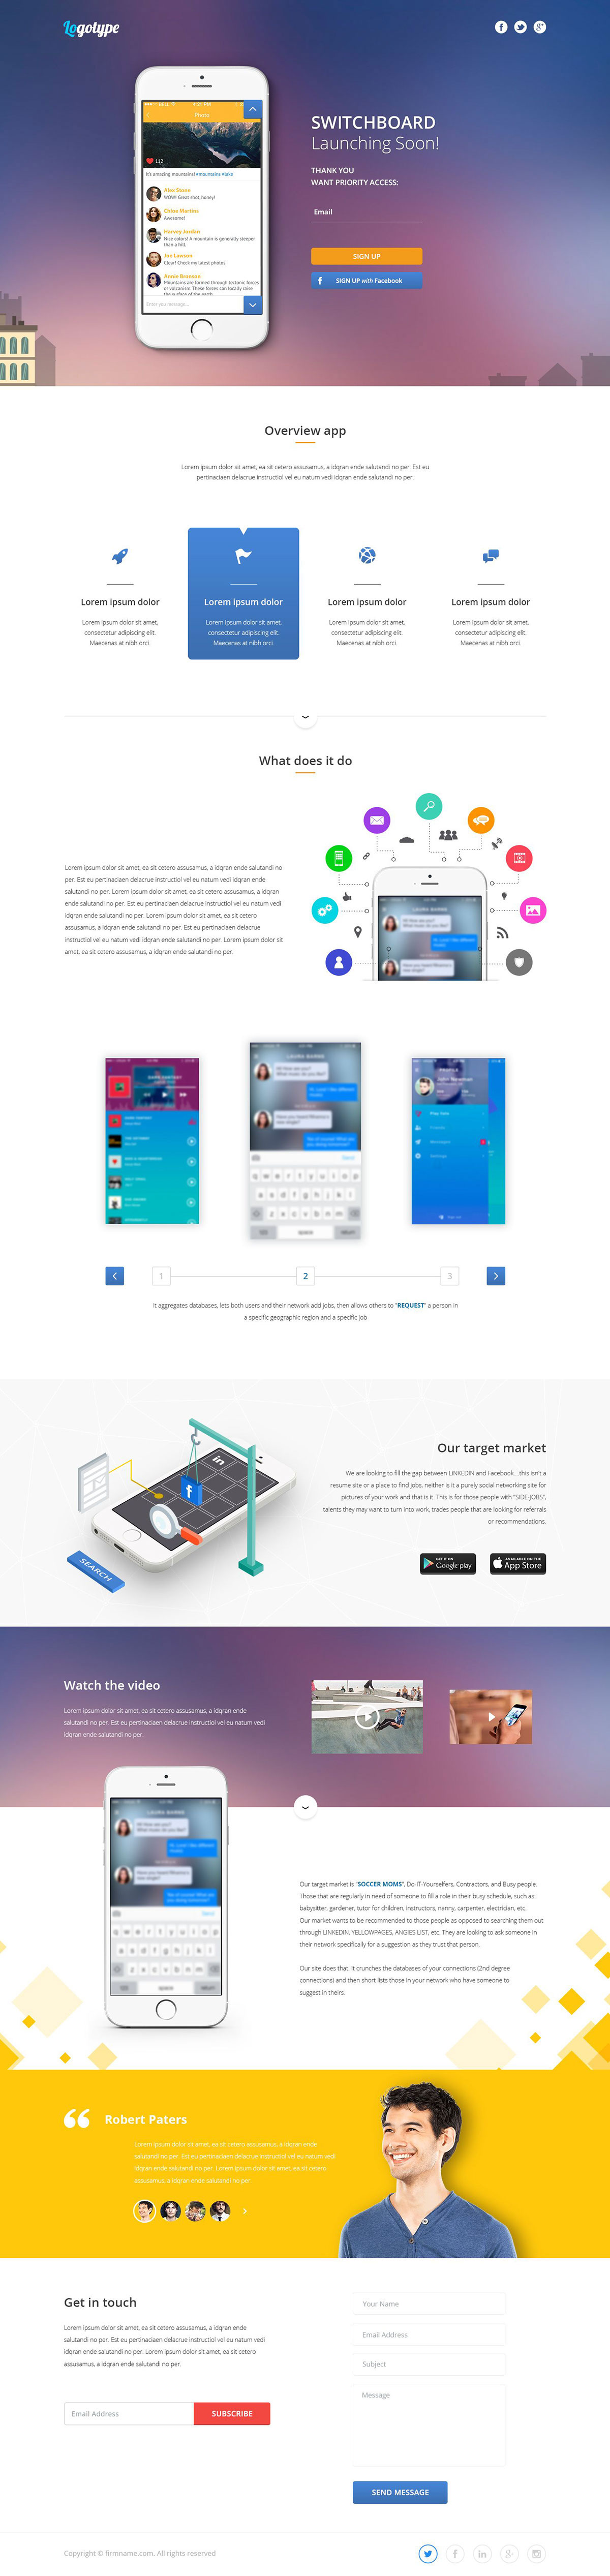 Switchboarding - Landing page - Web-development - Merehead Development